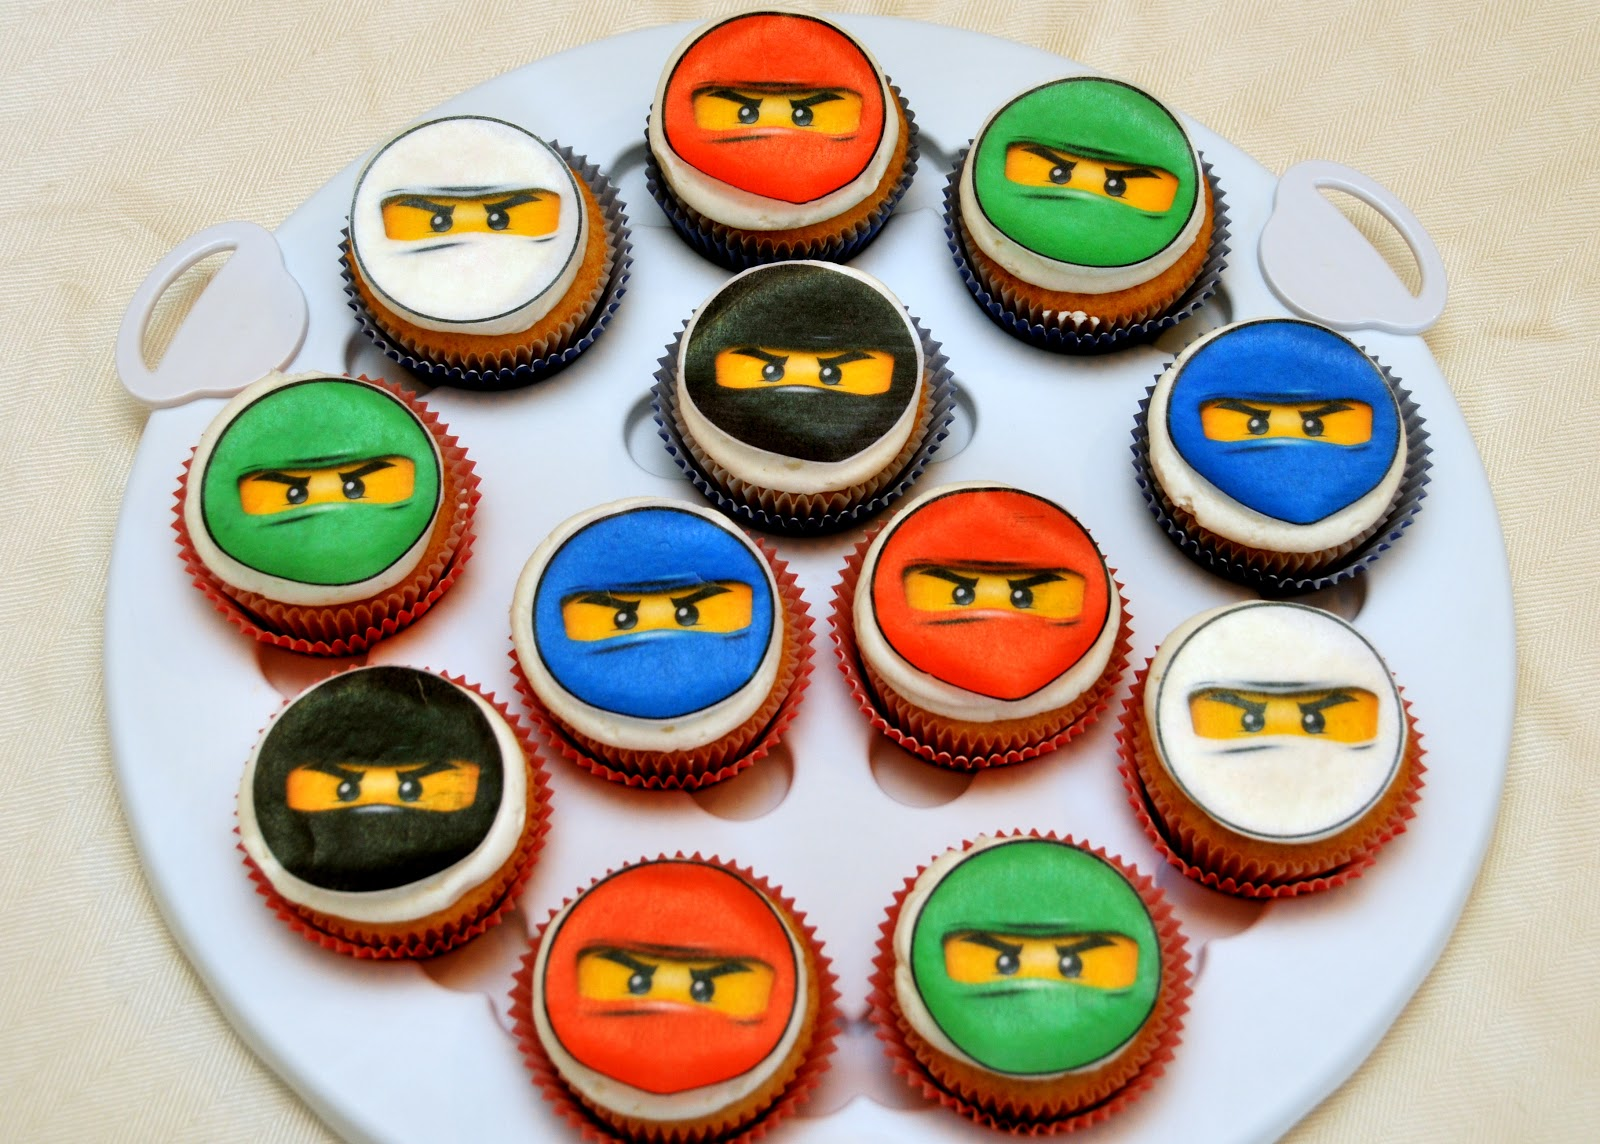 Ninja Cake Decorating Ideas